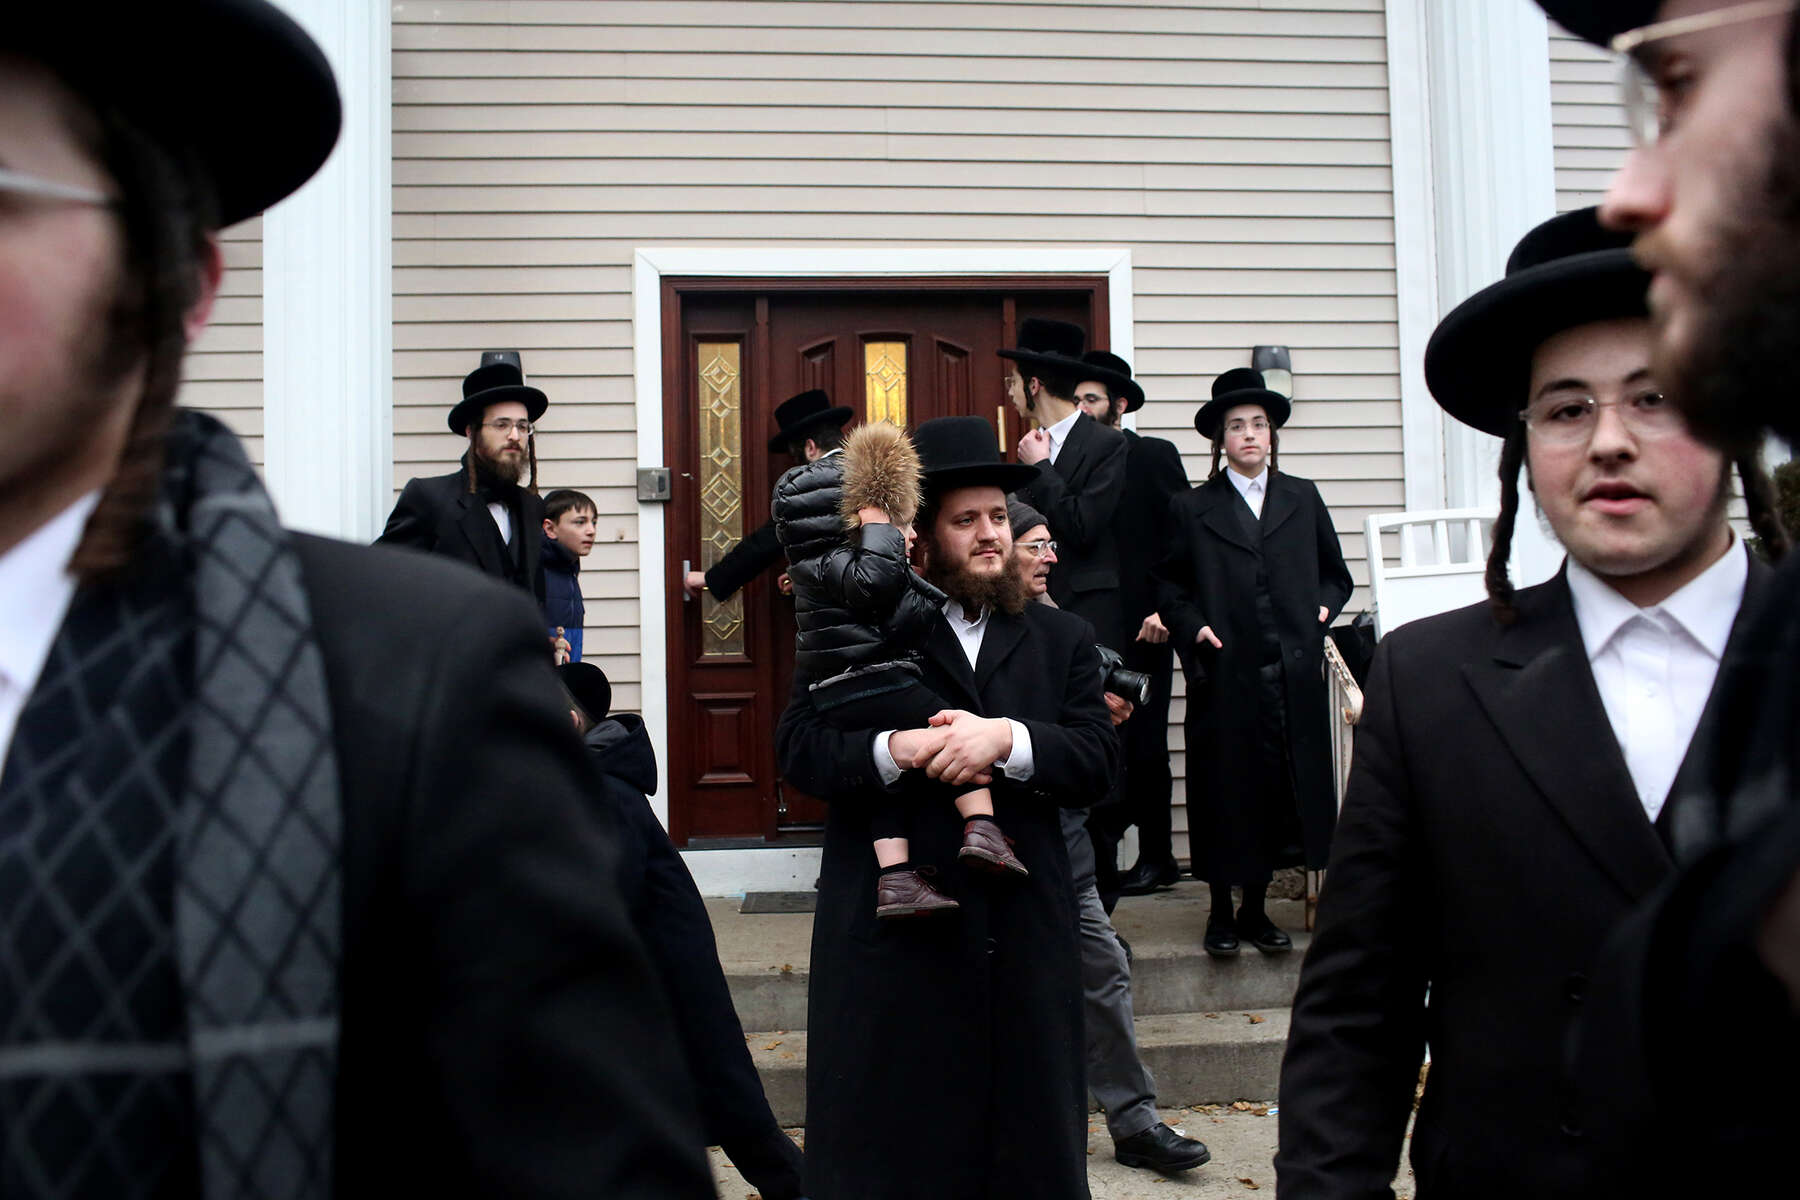 A crowd gathers for Hachnosas Sefer Torah in front of 47 Forshay Road in Monsey, NY, on December 29, 2019, where suspect Grafton Thomas, 38, stabbed 5 people at a Hanukkah gathering the previous evening. Anti-Semitic attacks are on the rise around the country — and in New York City, anti-Semitic crimes have risen by 21 percent in the past year, according to the Anti-Defamation League. (For The New York Times)